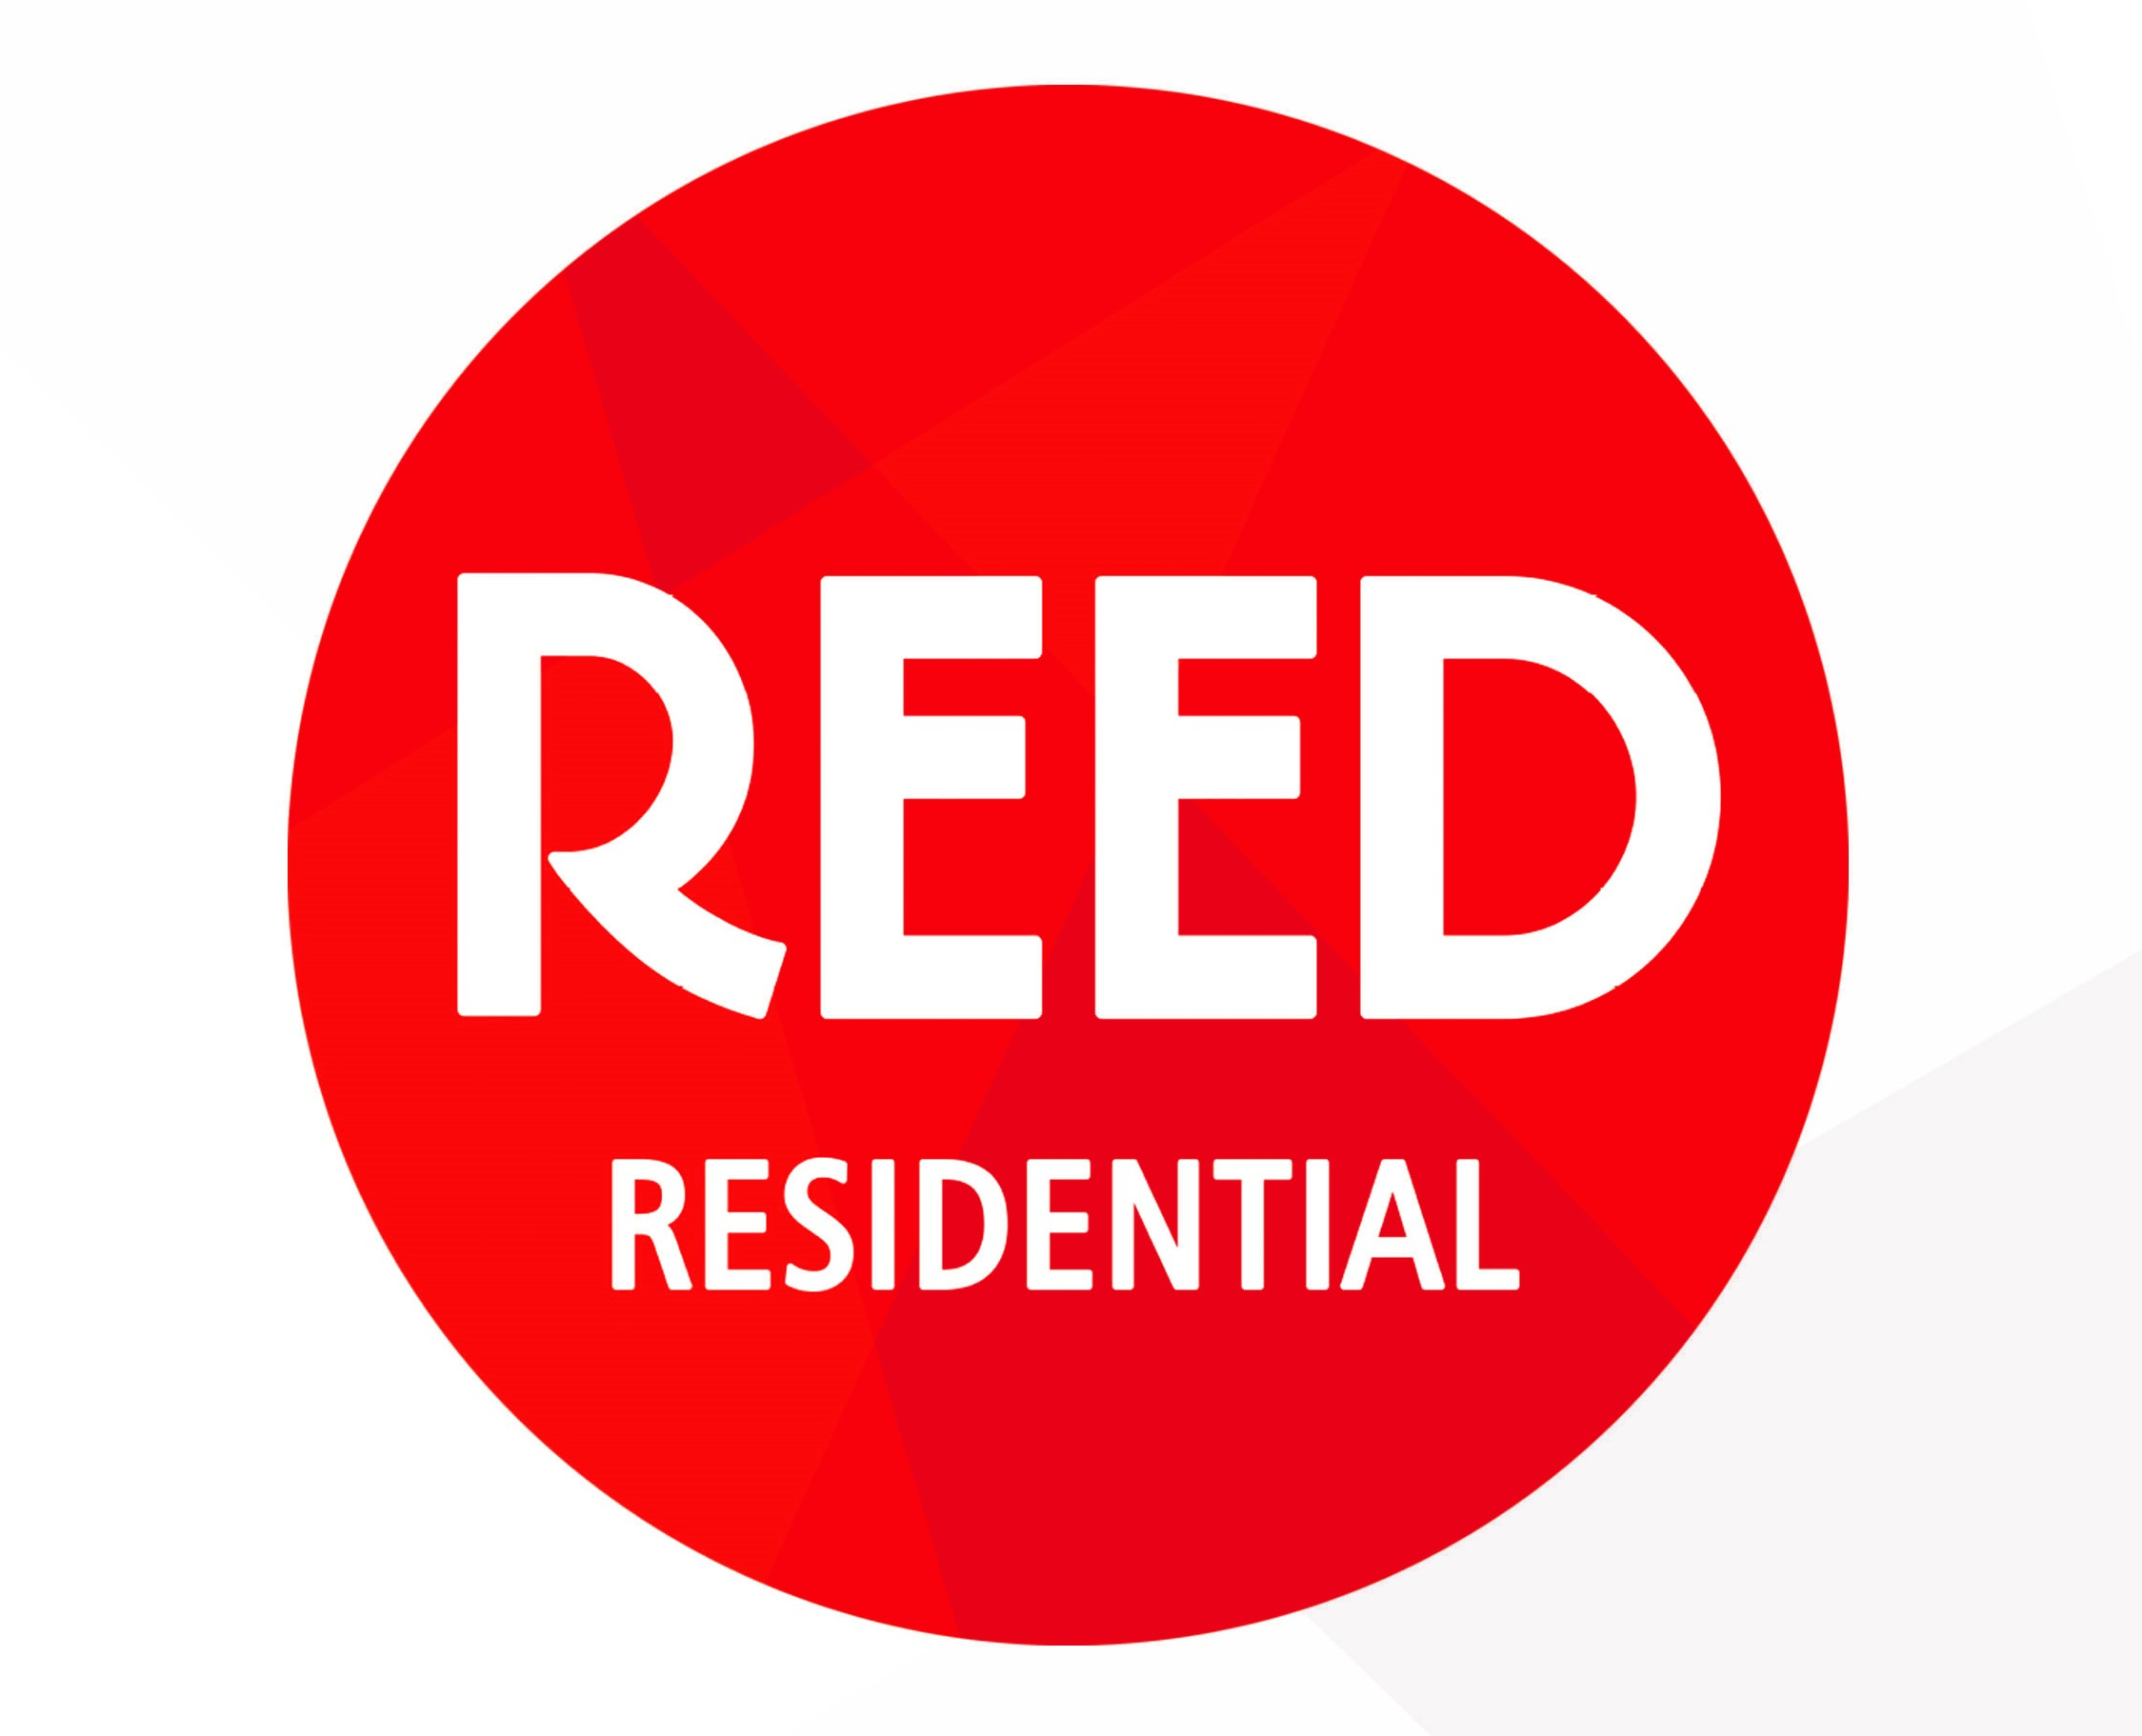 Reed Residential (Westcliff on Sea) : Letting agents in Beeston Nottinghamshire